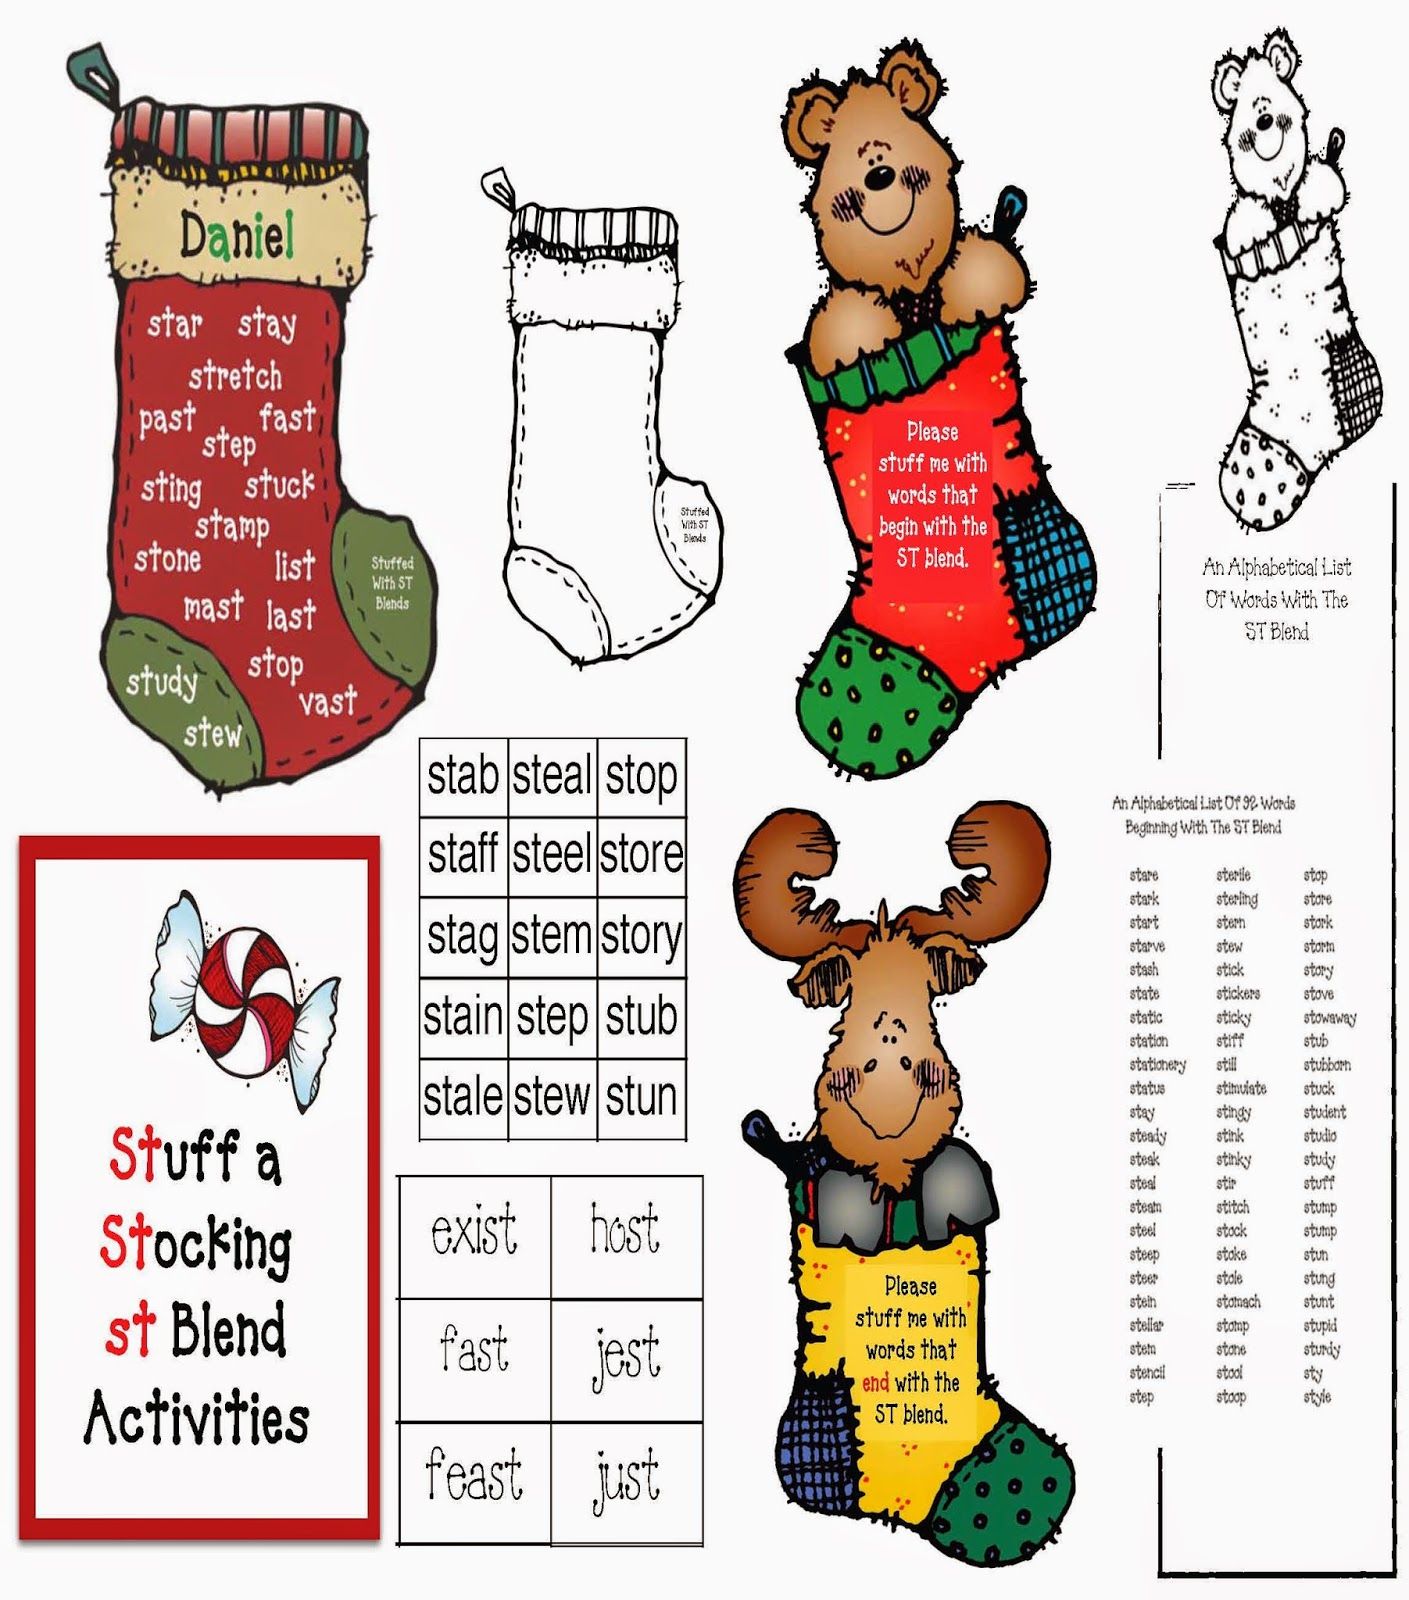 Classroom Freebies Stuff A Stocking Activities For The St